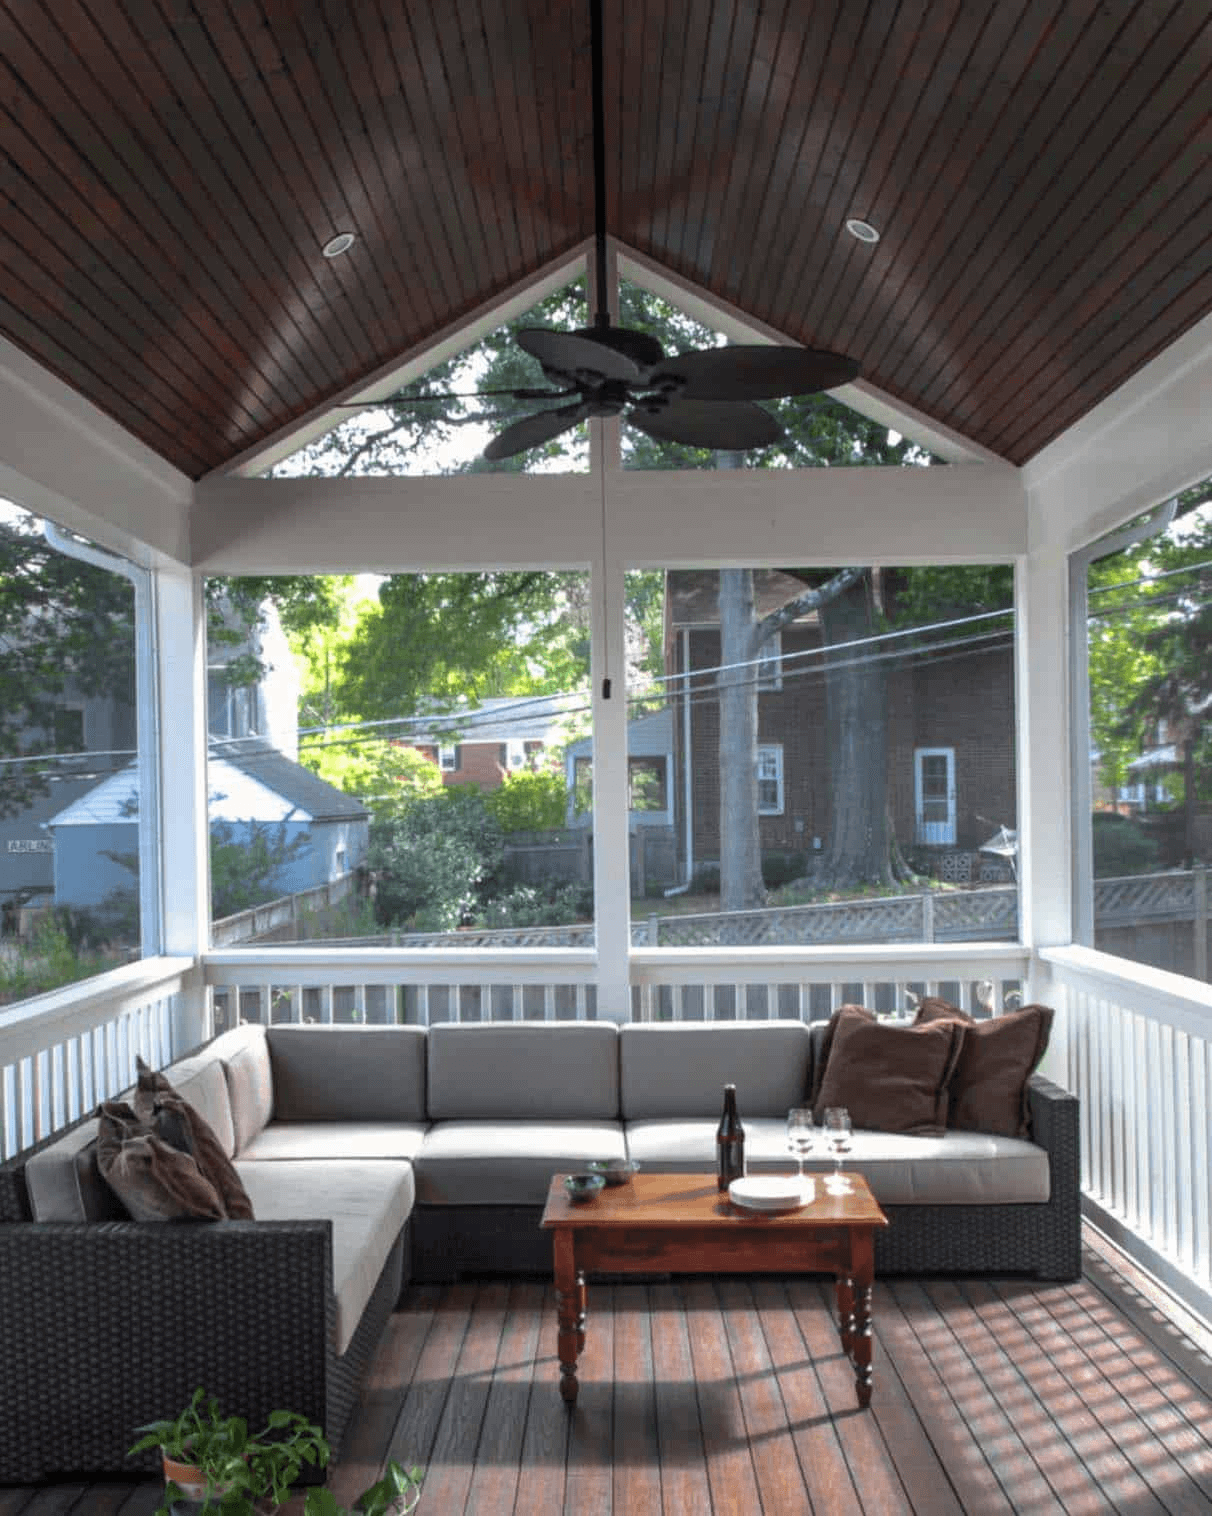 WOODEN PANELS FLOORING OPTION FOR SCREENED PORCH